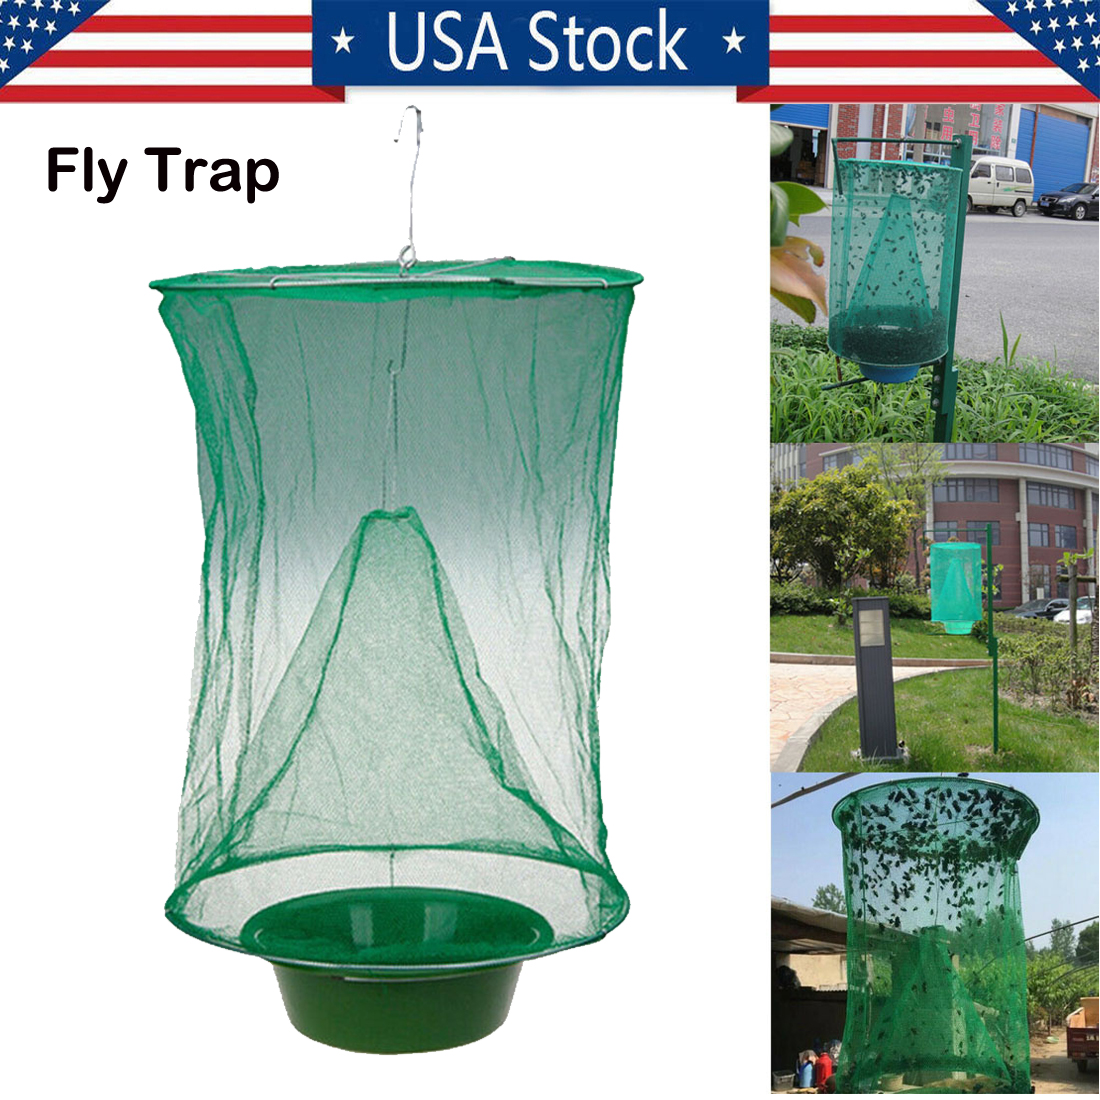 Home Furniture Diy Hanging Fly Trap Net Reusable Catcher Plastic Tray Cage Green For Horse Farm Home Furniture Diy Other Home Furniture Diy